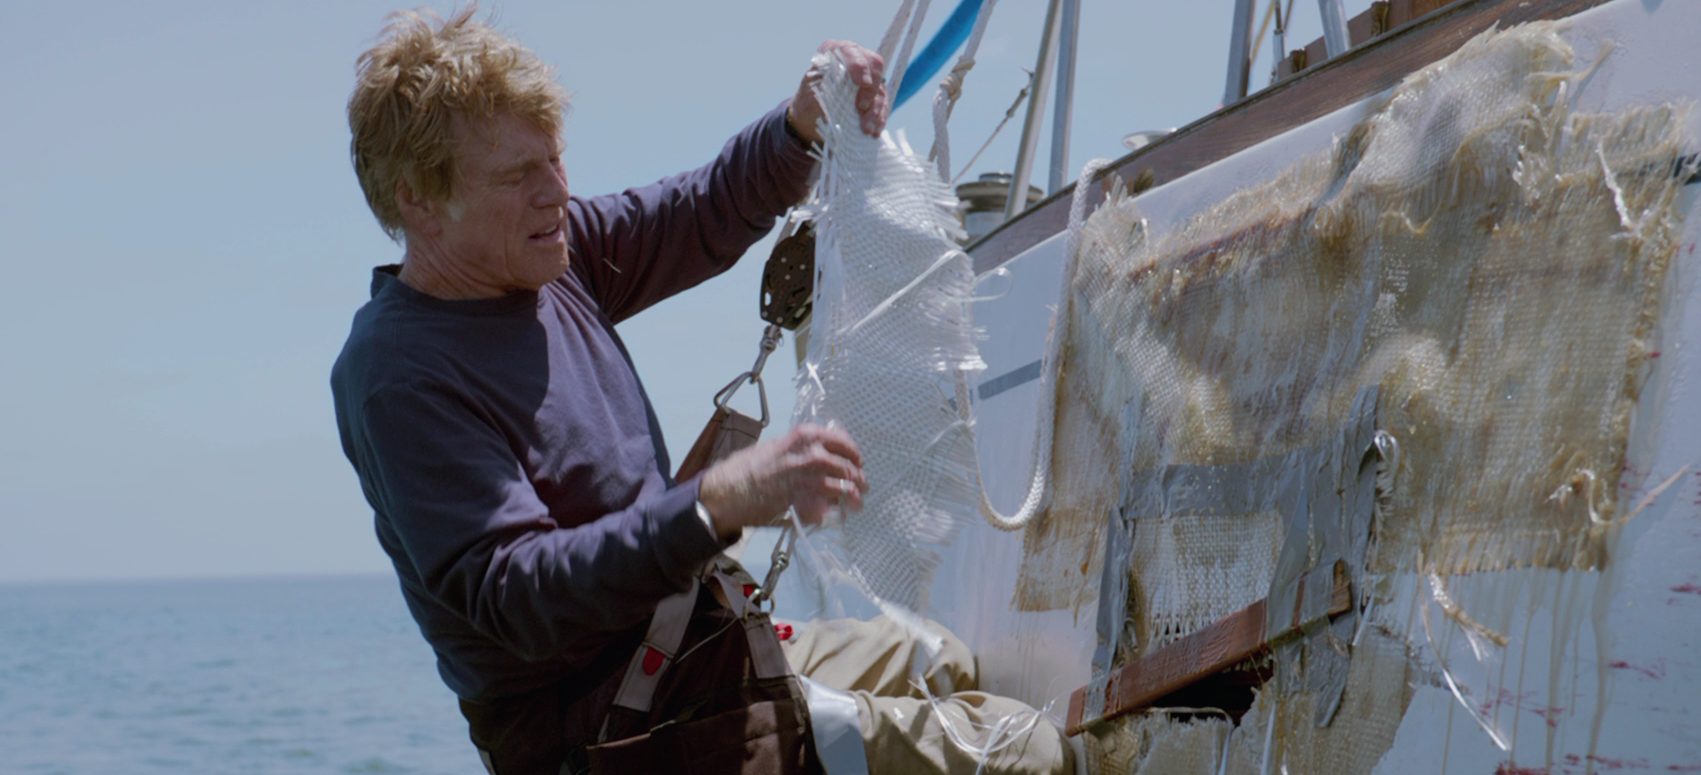 Robert Redford's nautical disaster movie stays silent and speaks volumes. Sailing solo in the Indian Ocean, a wedding ring and a couple maps are the only background information we have on Redford's character. All Is Lost is squarely focused on the present, as a storm sweeps in, bent on annihilating the tiny vessel. With pragmatic diligence, the film charts Redford's attempt to plug holes and mend broken parts. His life is in his own hands. So maybe flip through that old Boy Scout manual…